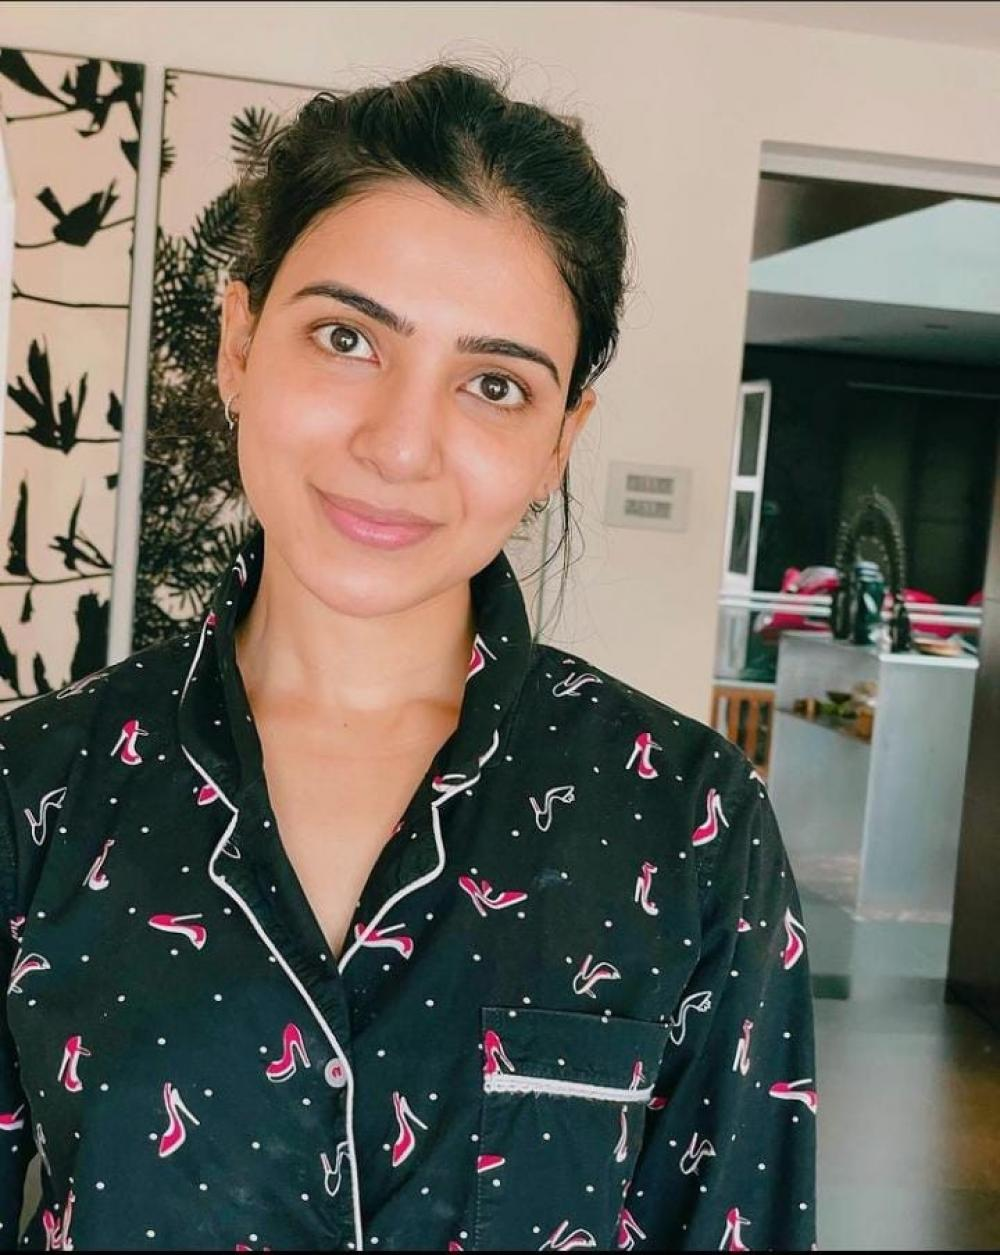 The Weekend Leader - Samantha snaps at reporter when asked about seperation rumours